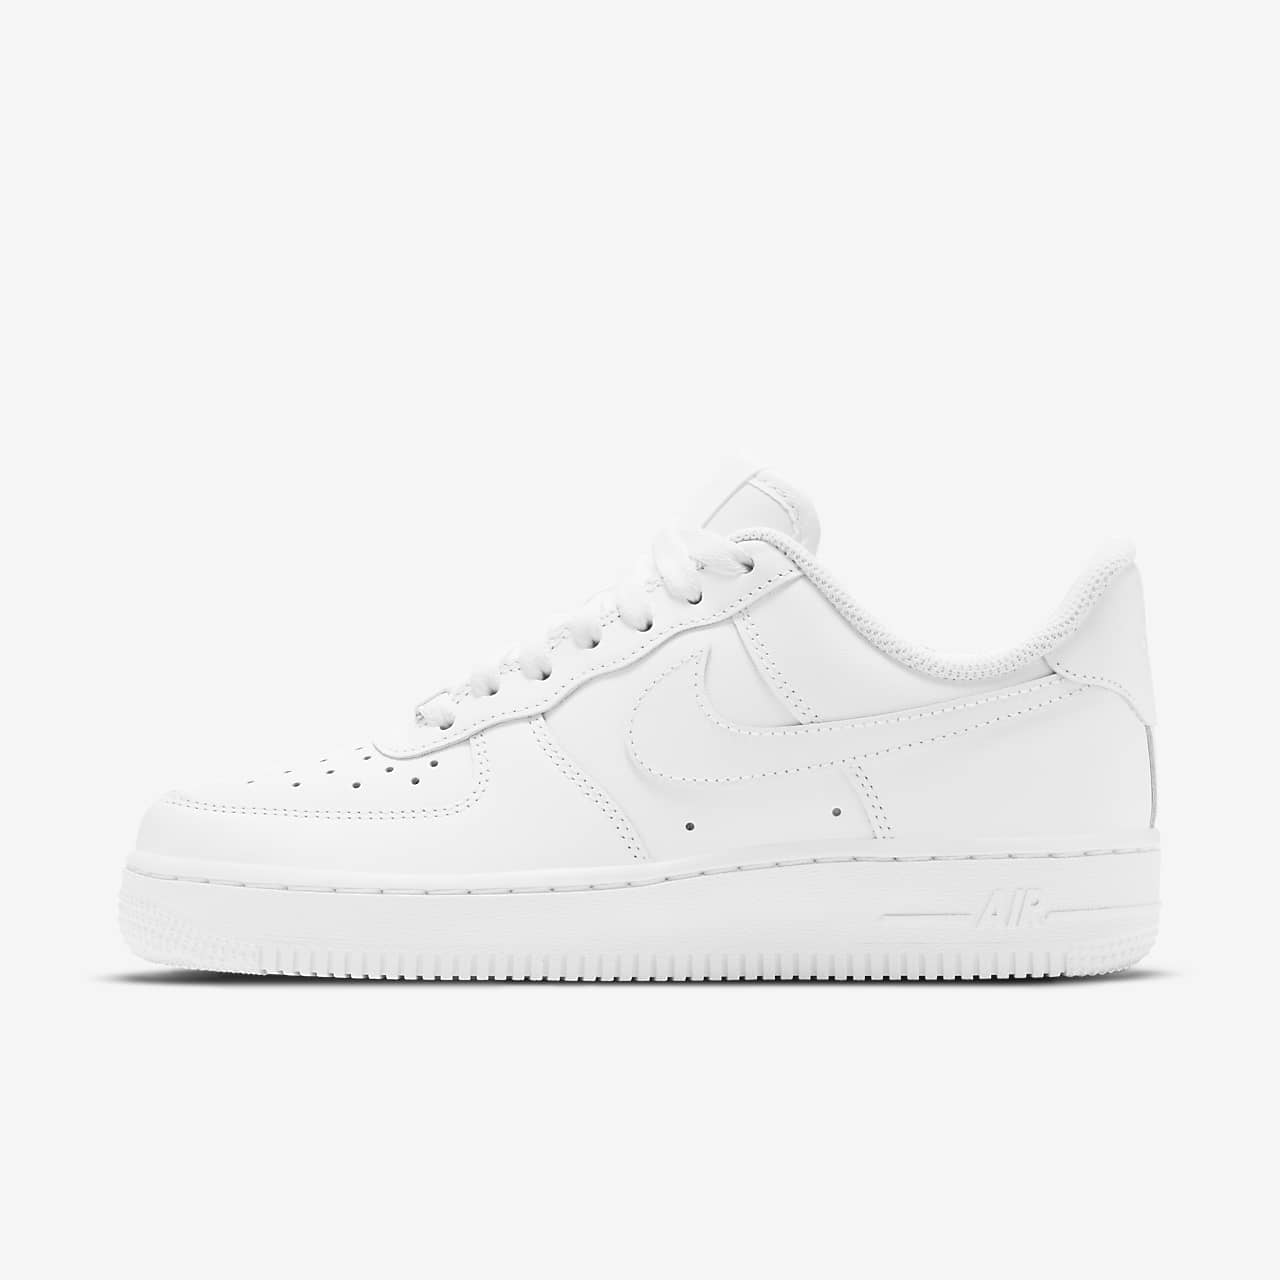 nike air force 1 07 women's shoe white nz